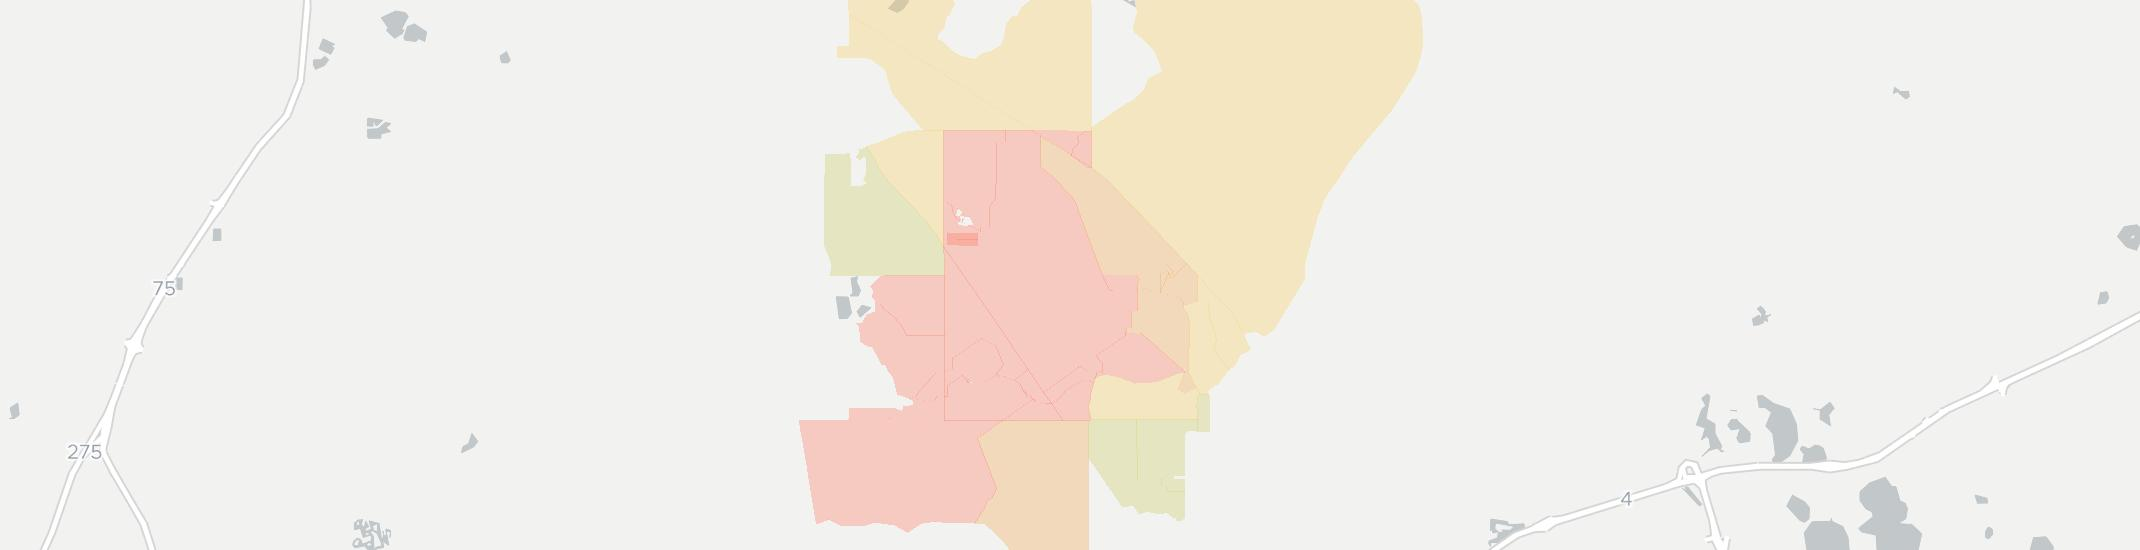 Kathleen Internet Competition Map. Click for interactive map.